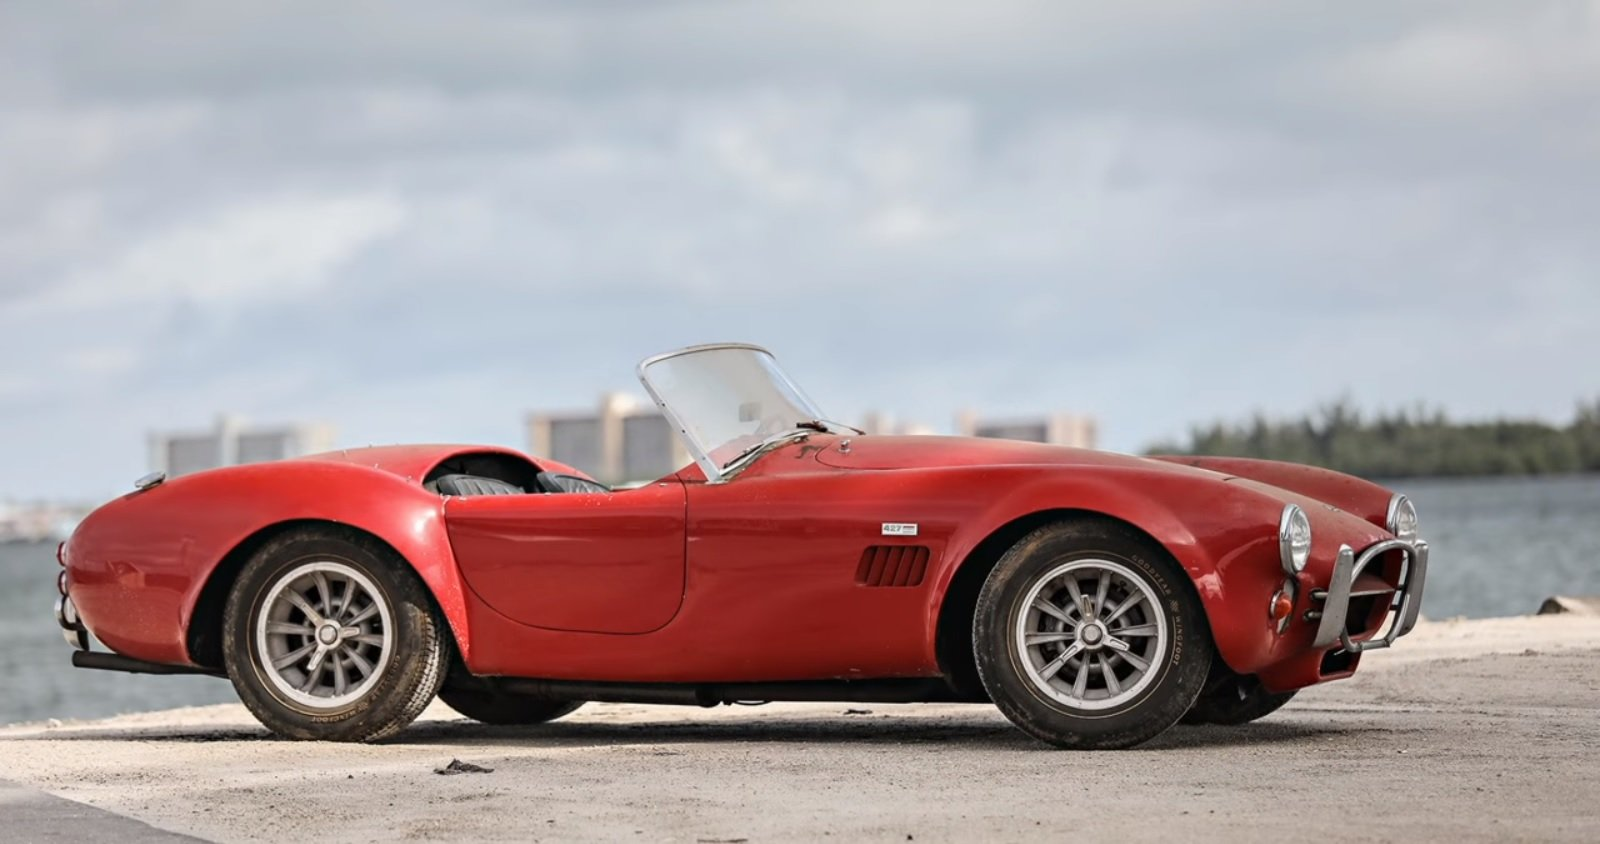 Watch: That Barn-Find Cobra Sold for $950,000